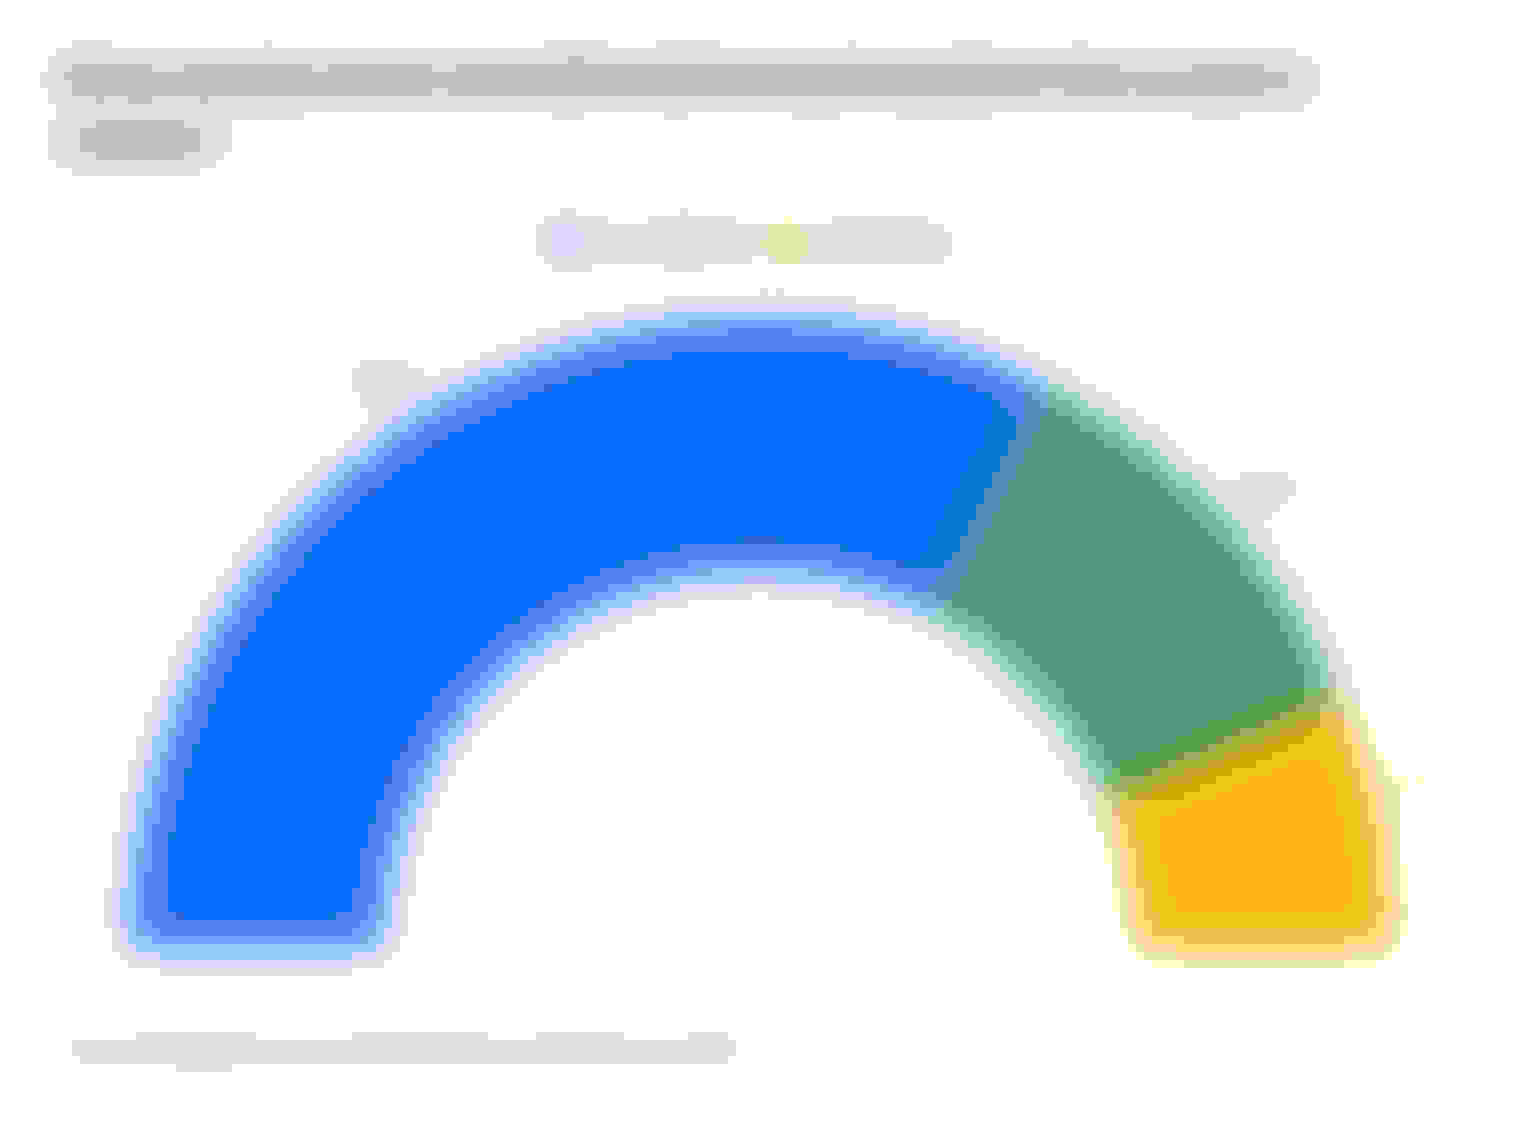 This is a graph of developing healthy habits